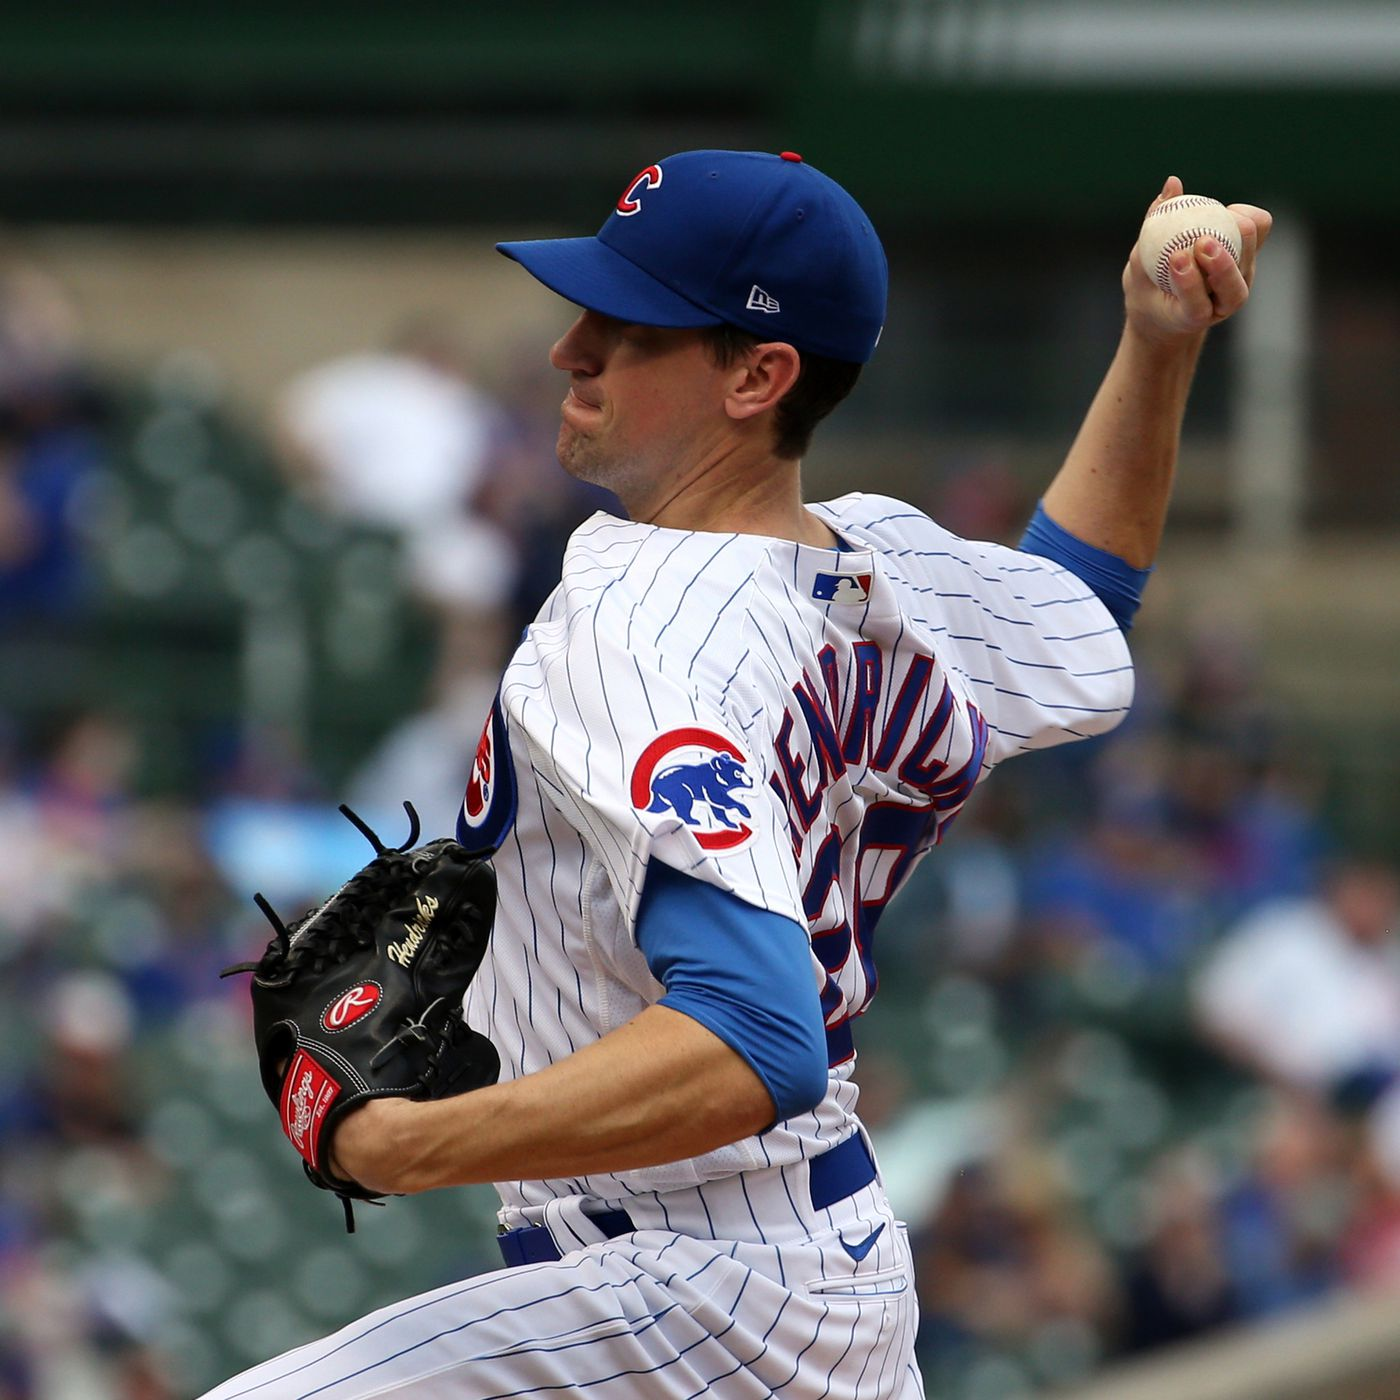 Cubs starter Kyle Hendricks delivers a pitch against the Brewers on April 7, 2021, at Wrigley Field.